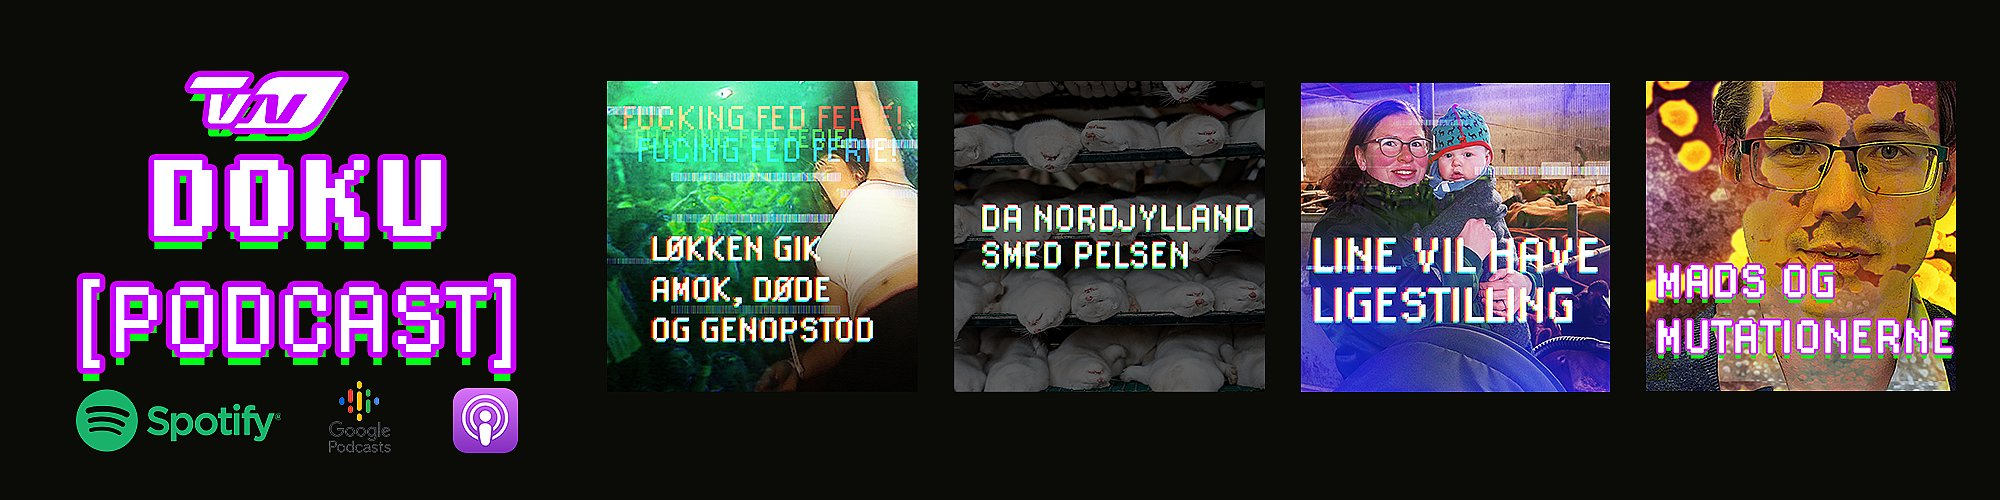 tv2 nord doku podcast banner_3